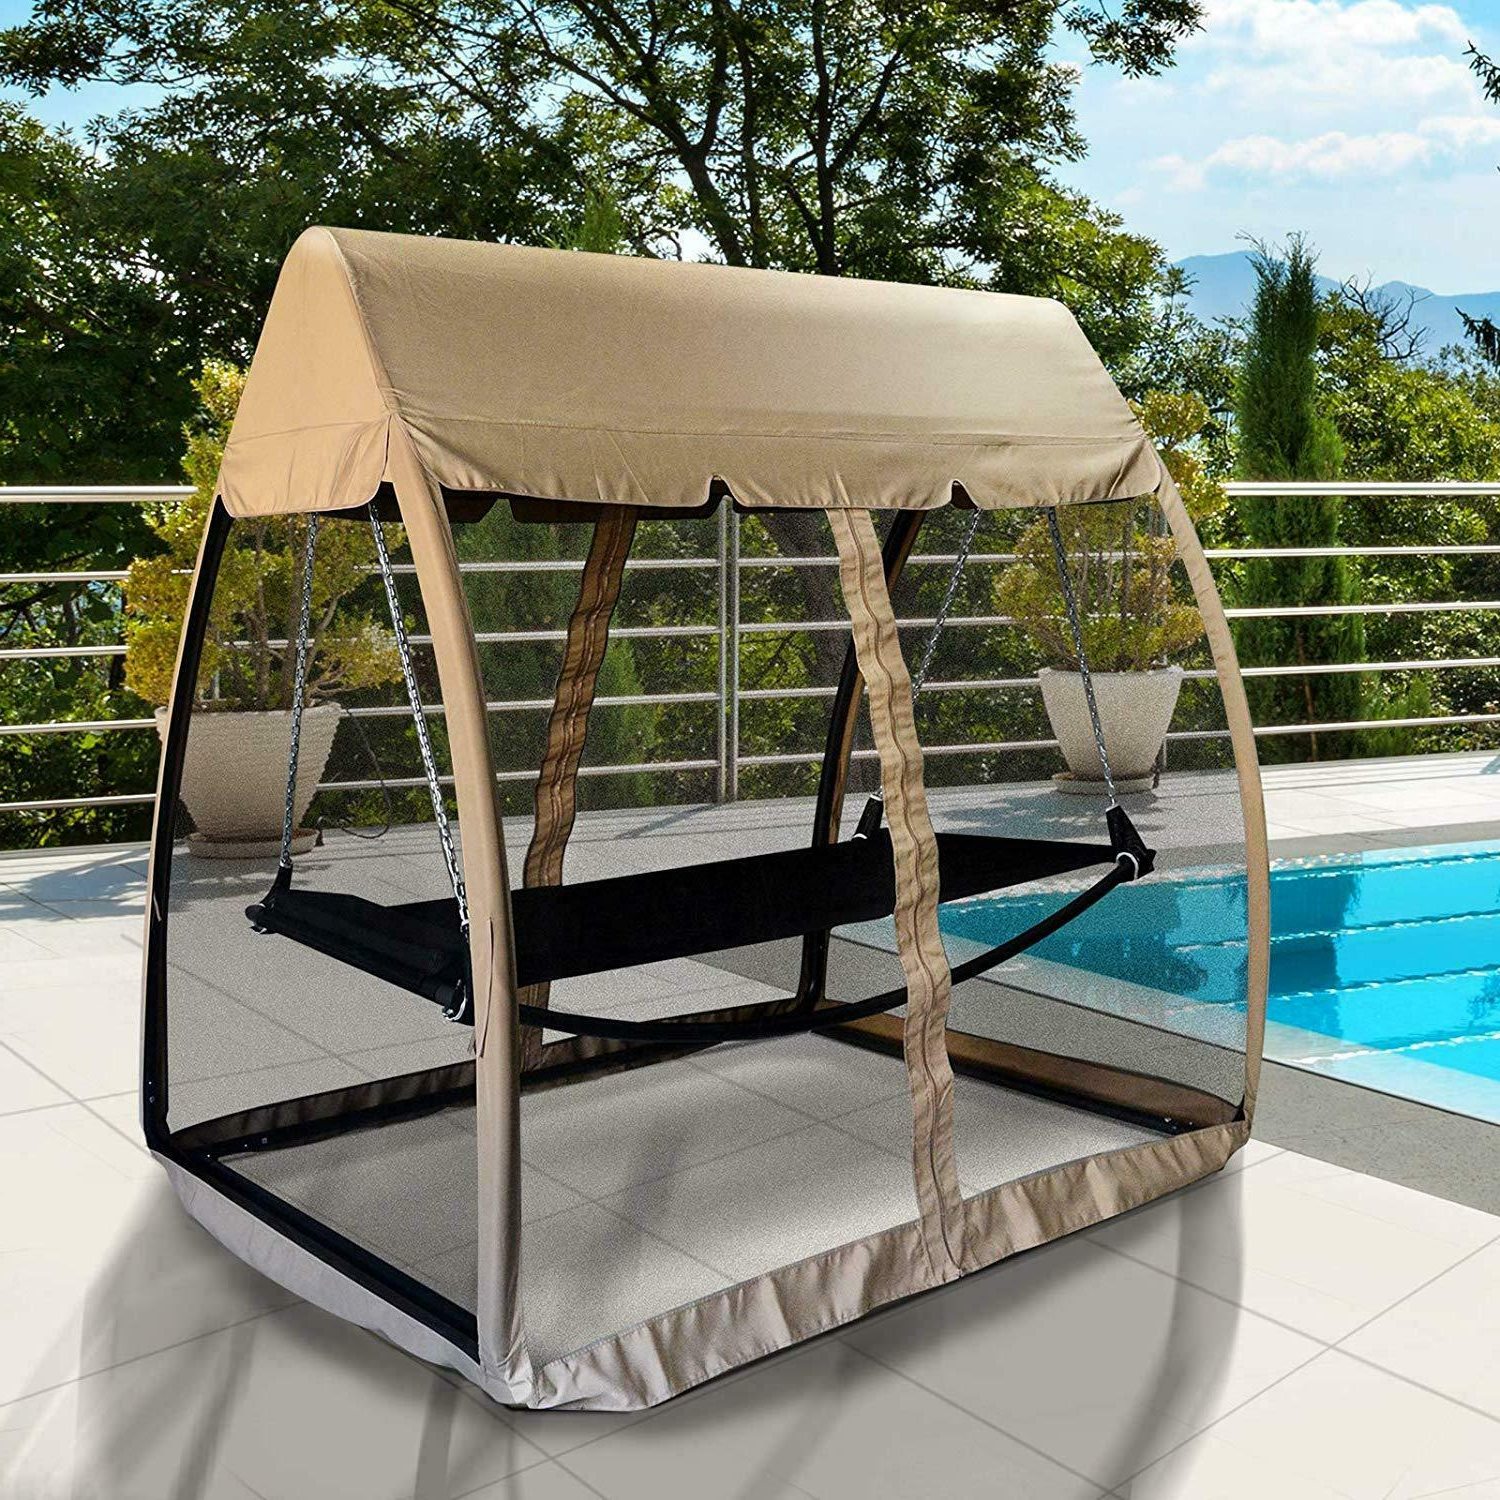 Garden Leisure Outdoor Hammock Patio Canopy Rocking Chairs Within Newest 3 Seat Garden Swing Chair 2in1 Outdoor Rocking Bench Daybed Hammock Cover Beige (View 12 of 25)